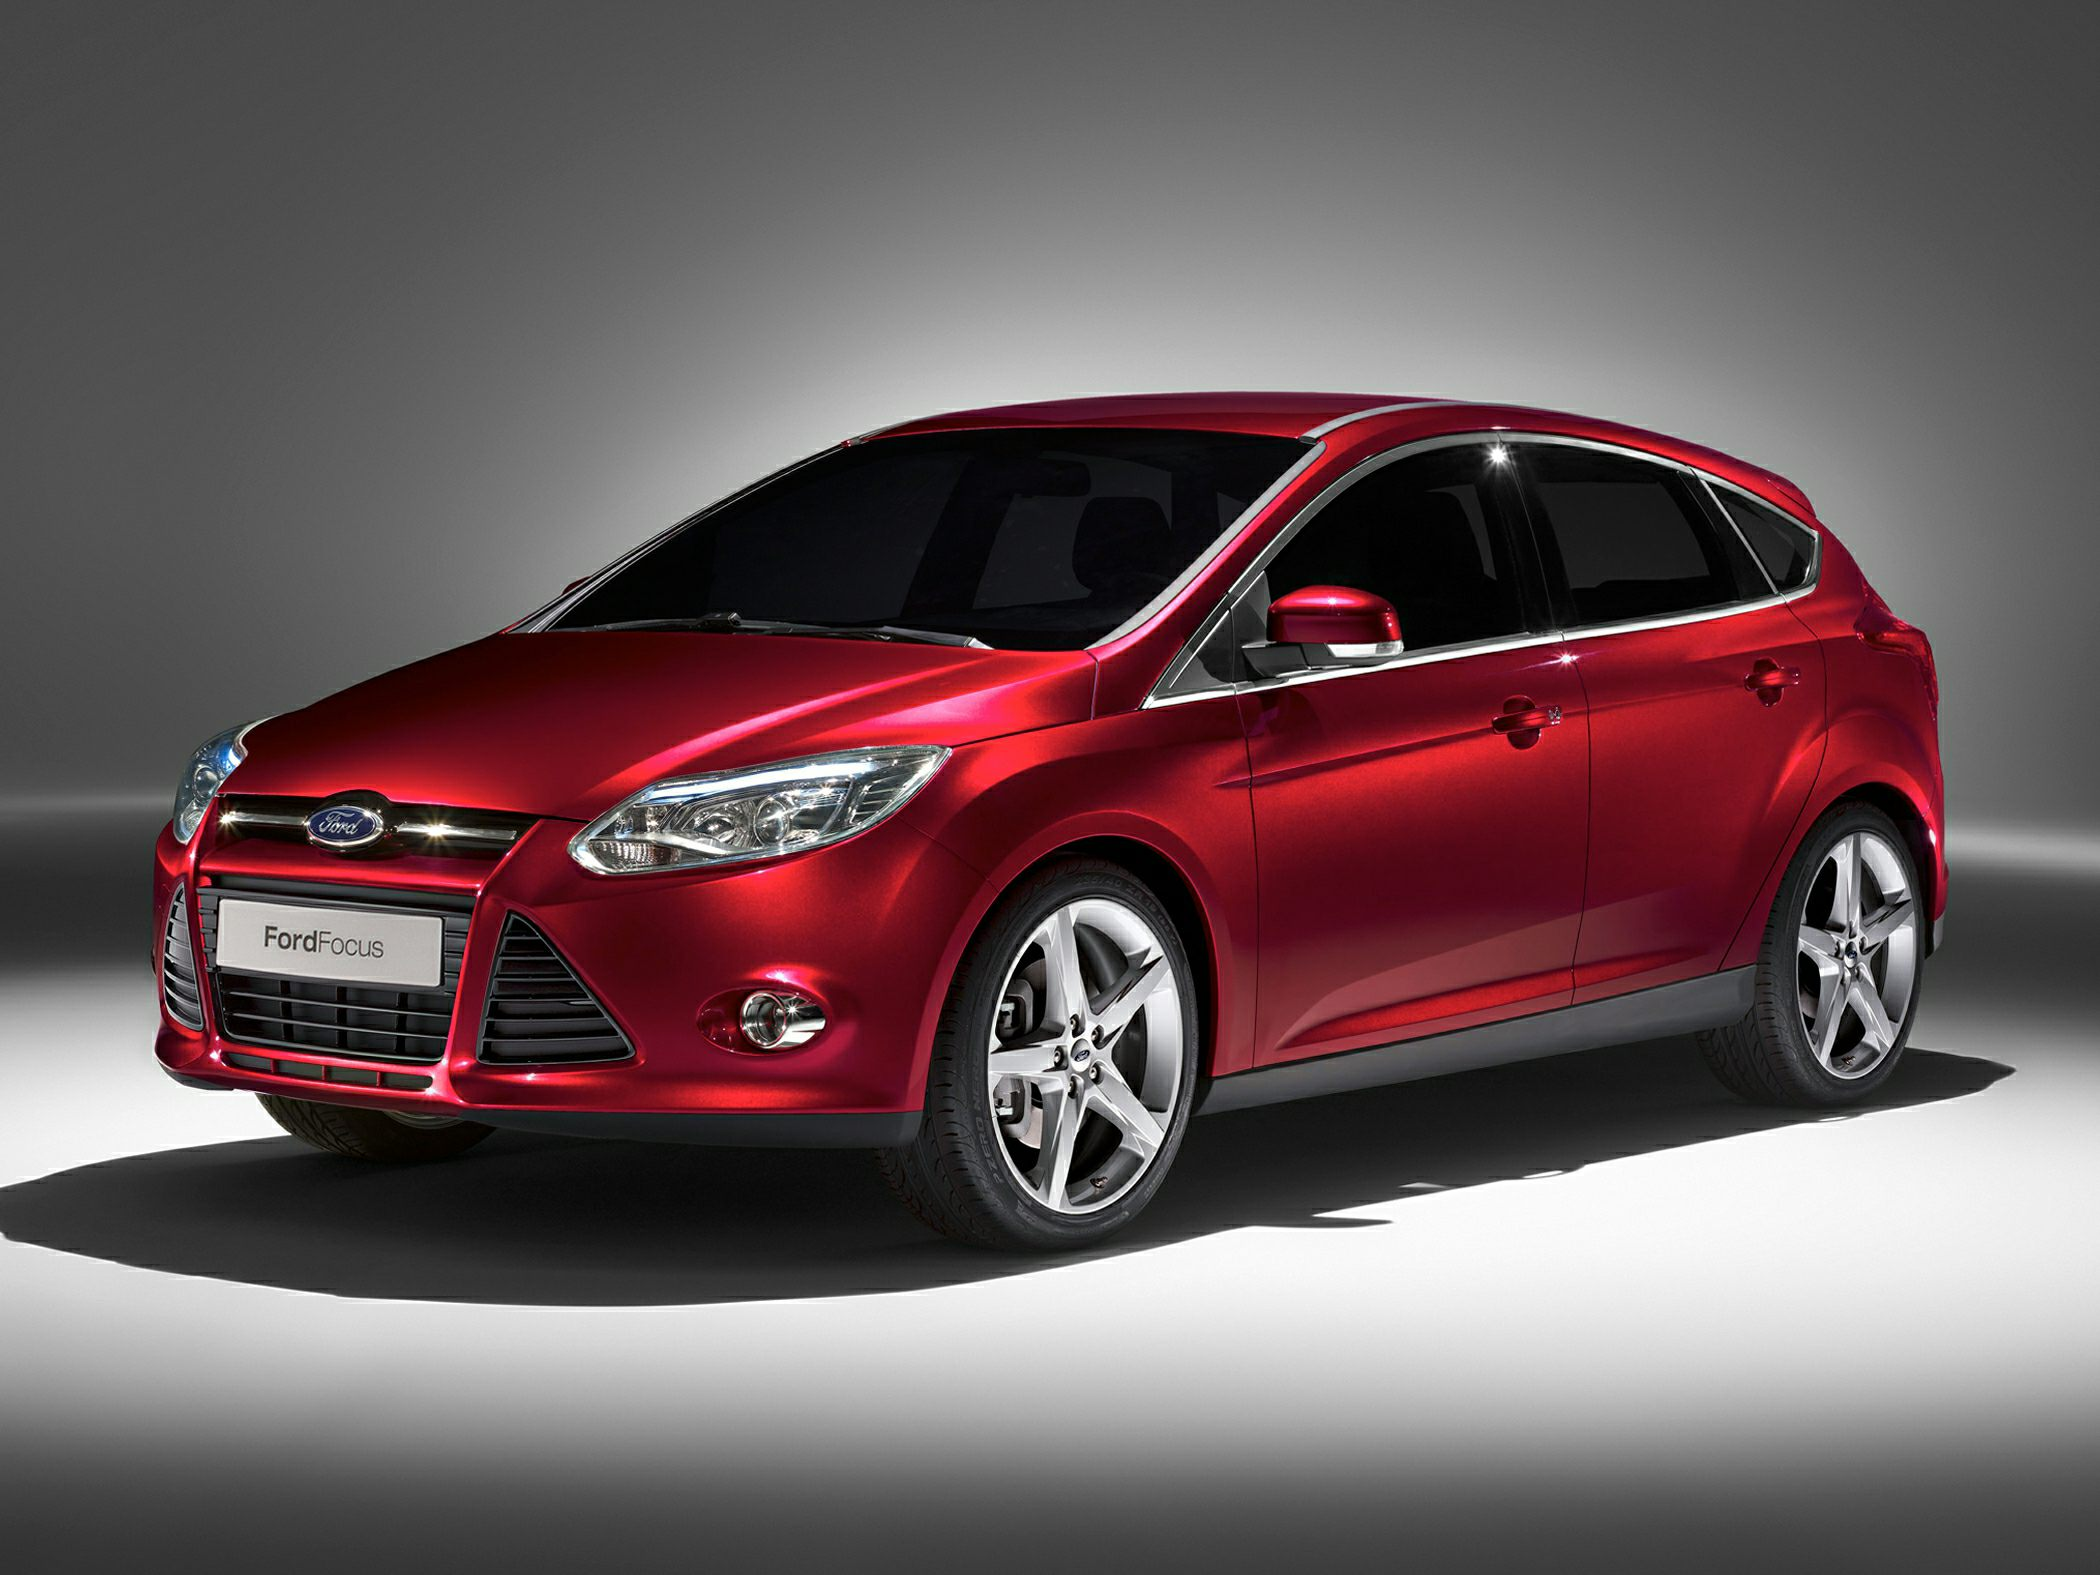 ford focus ii coupe 2012 models